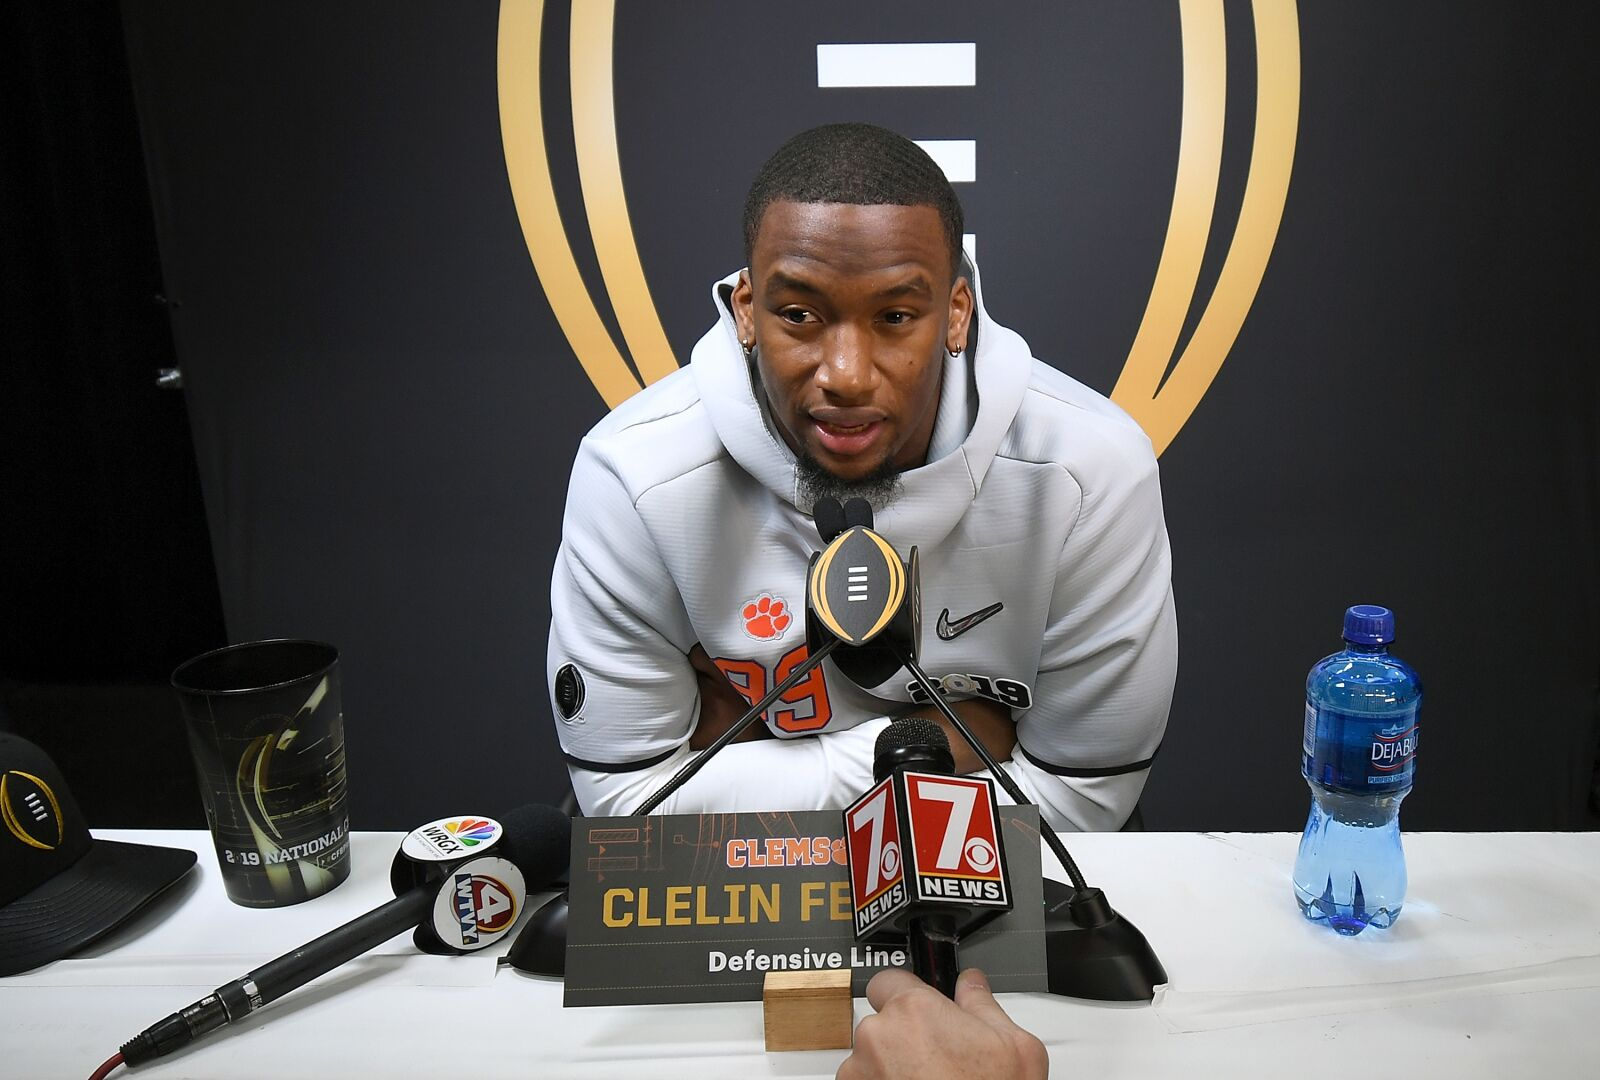 Oakland Raiders first round pick Clelin Ferrell has signed with the team